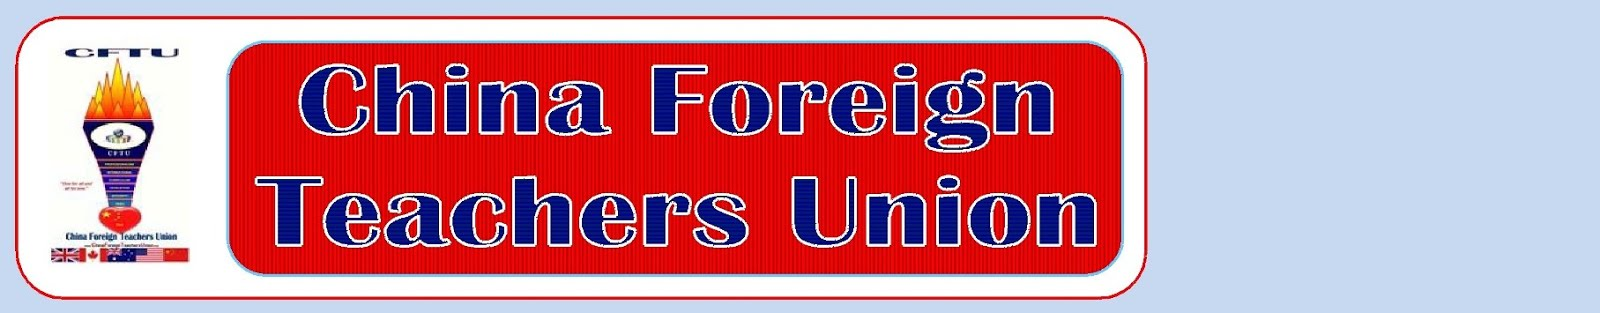 China Foreign Teachers Union